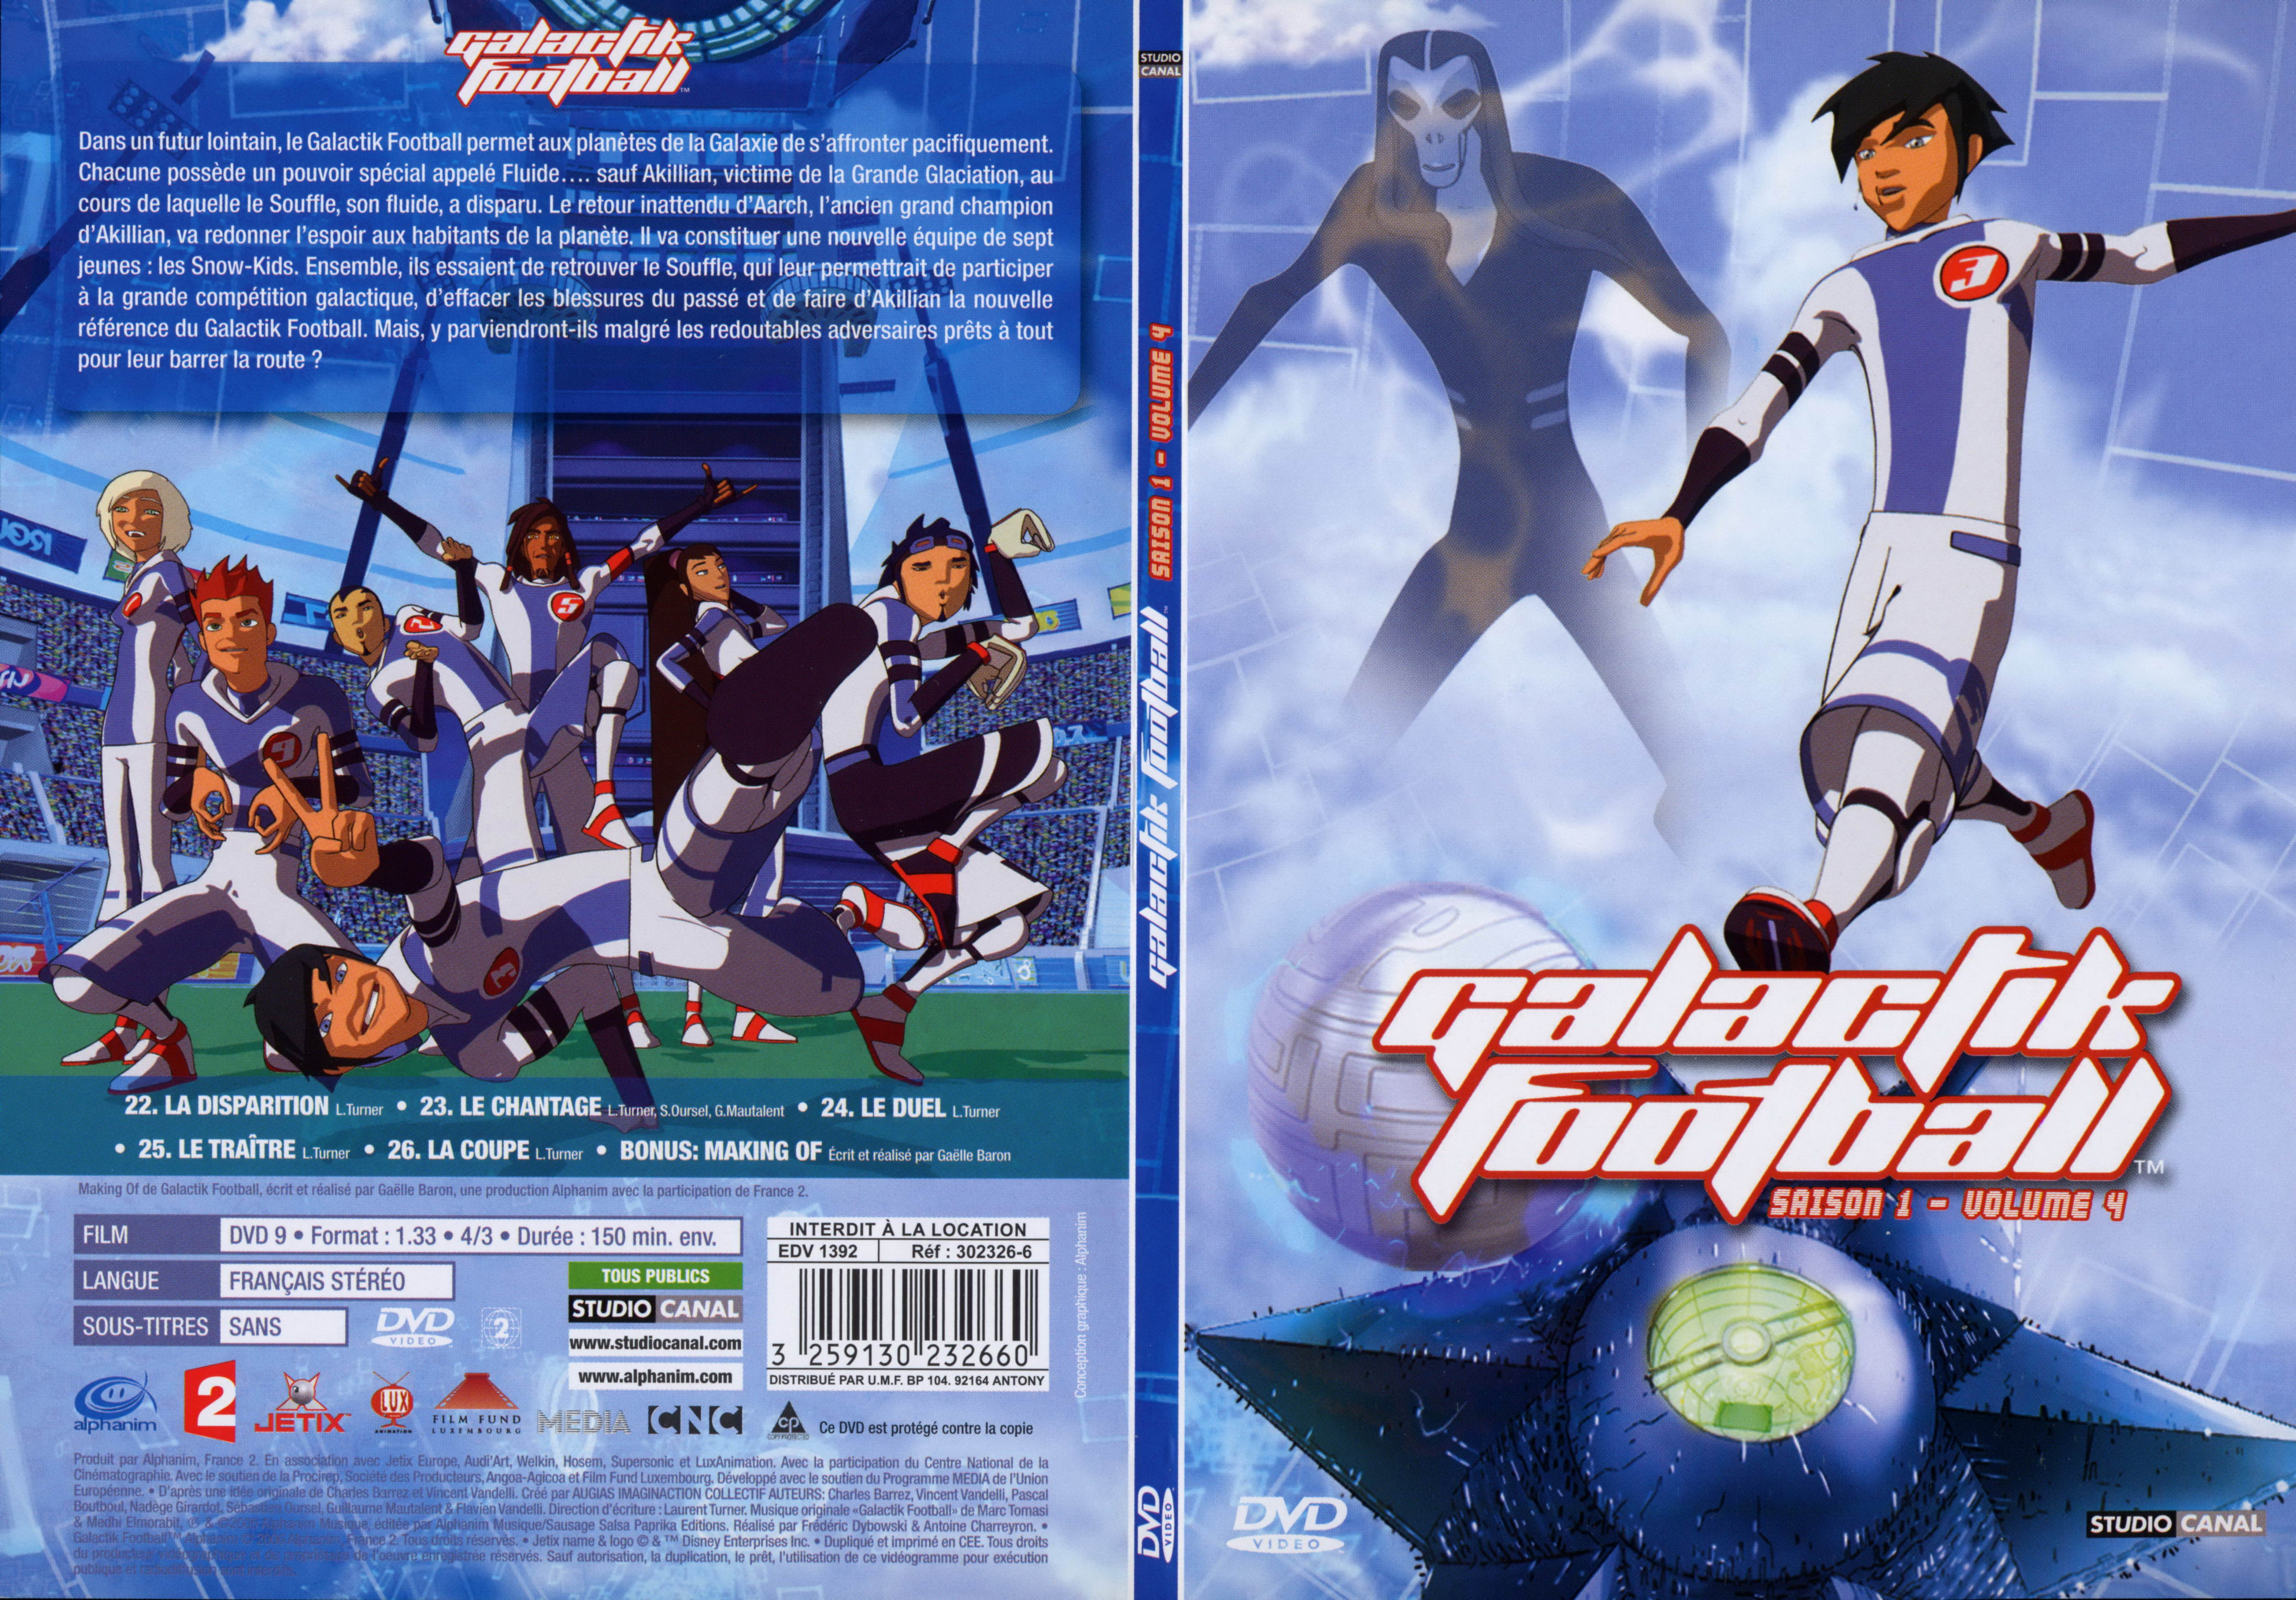 How to make a board game powerpoint it training online india quiz galactik football saison 1 - Saison 4 galactik football ...